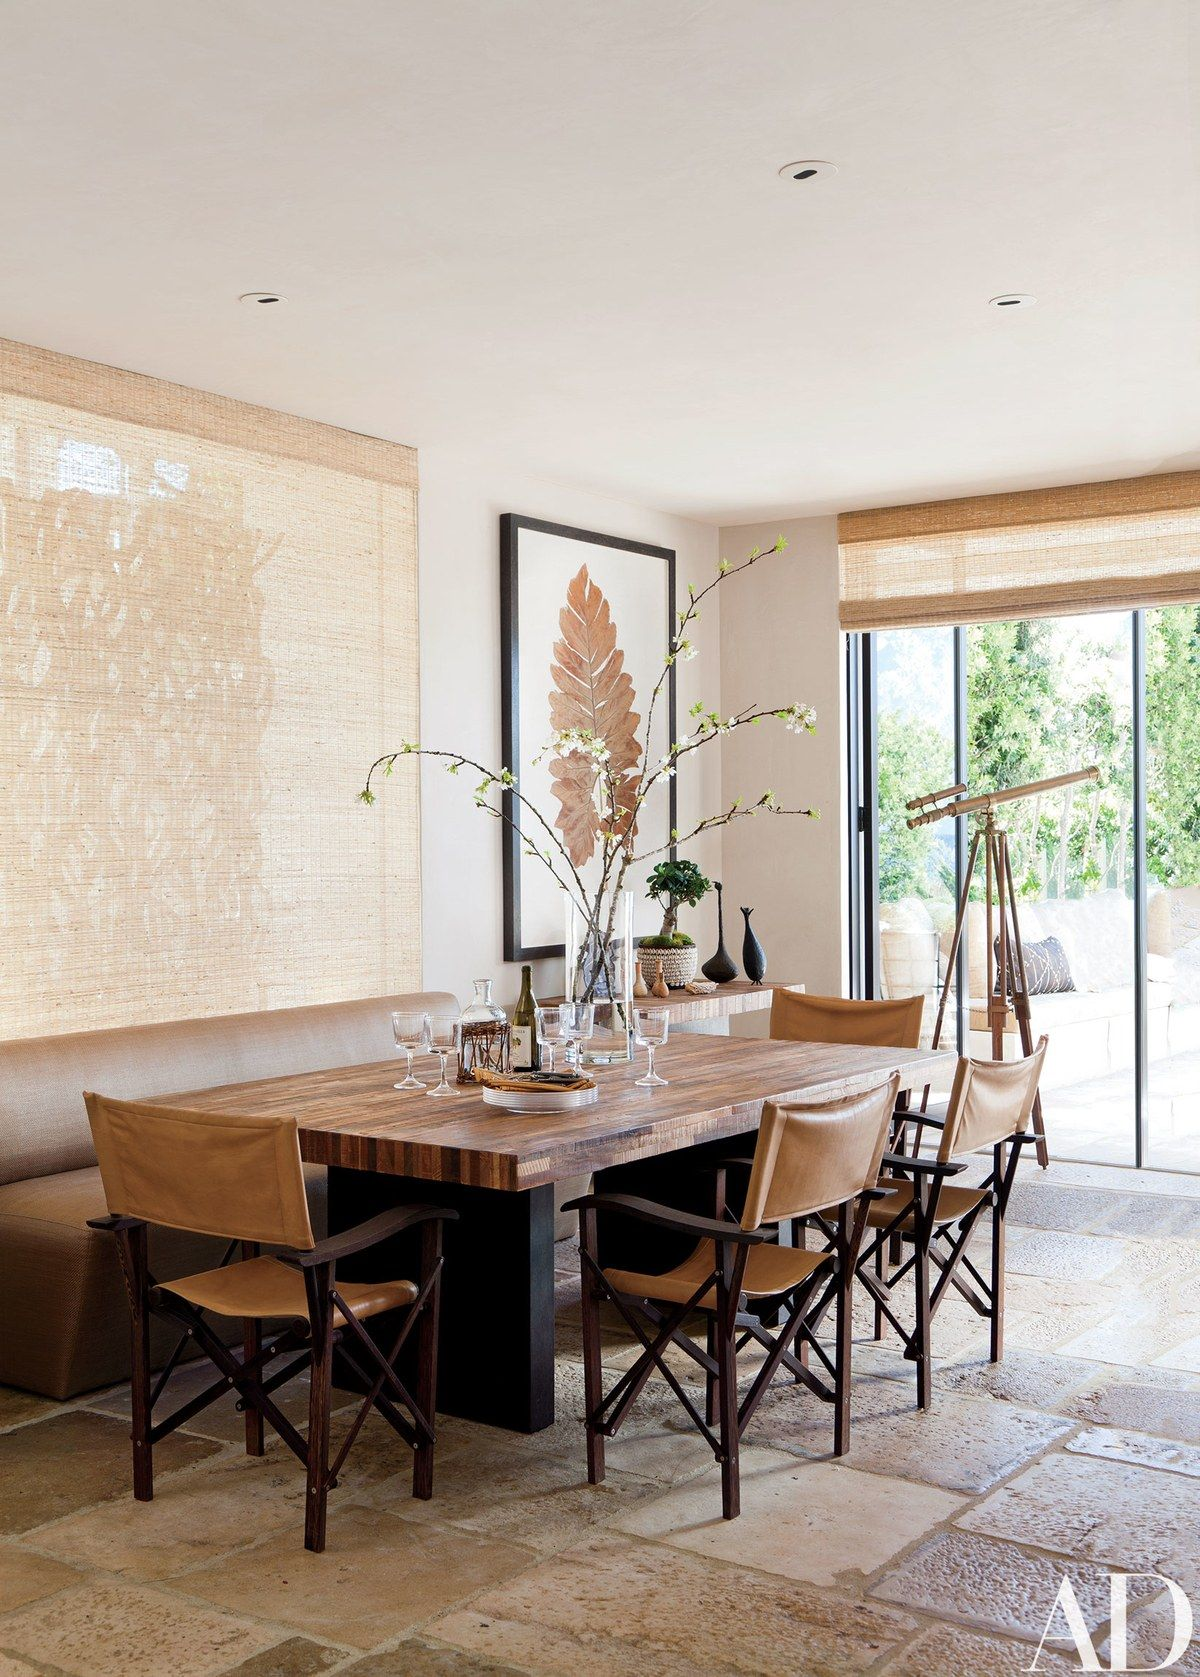 Hallberg And Wiseley Designed The Dining Table Directors Chairs Are By Christian Liaigre LiaigreStone FlooringDirectors